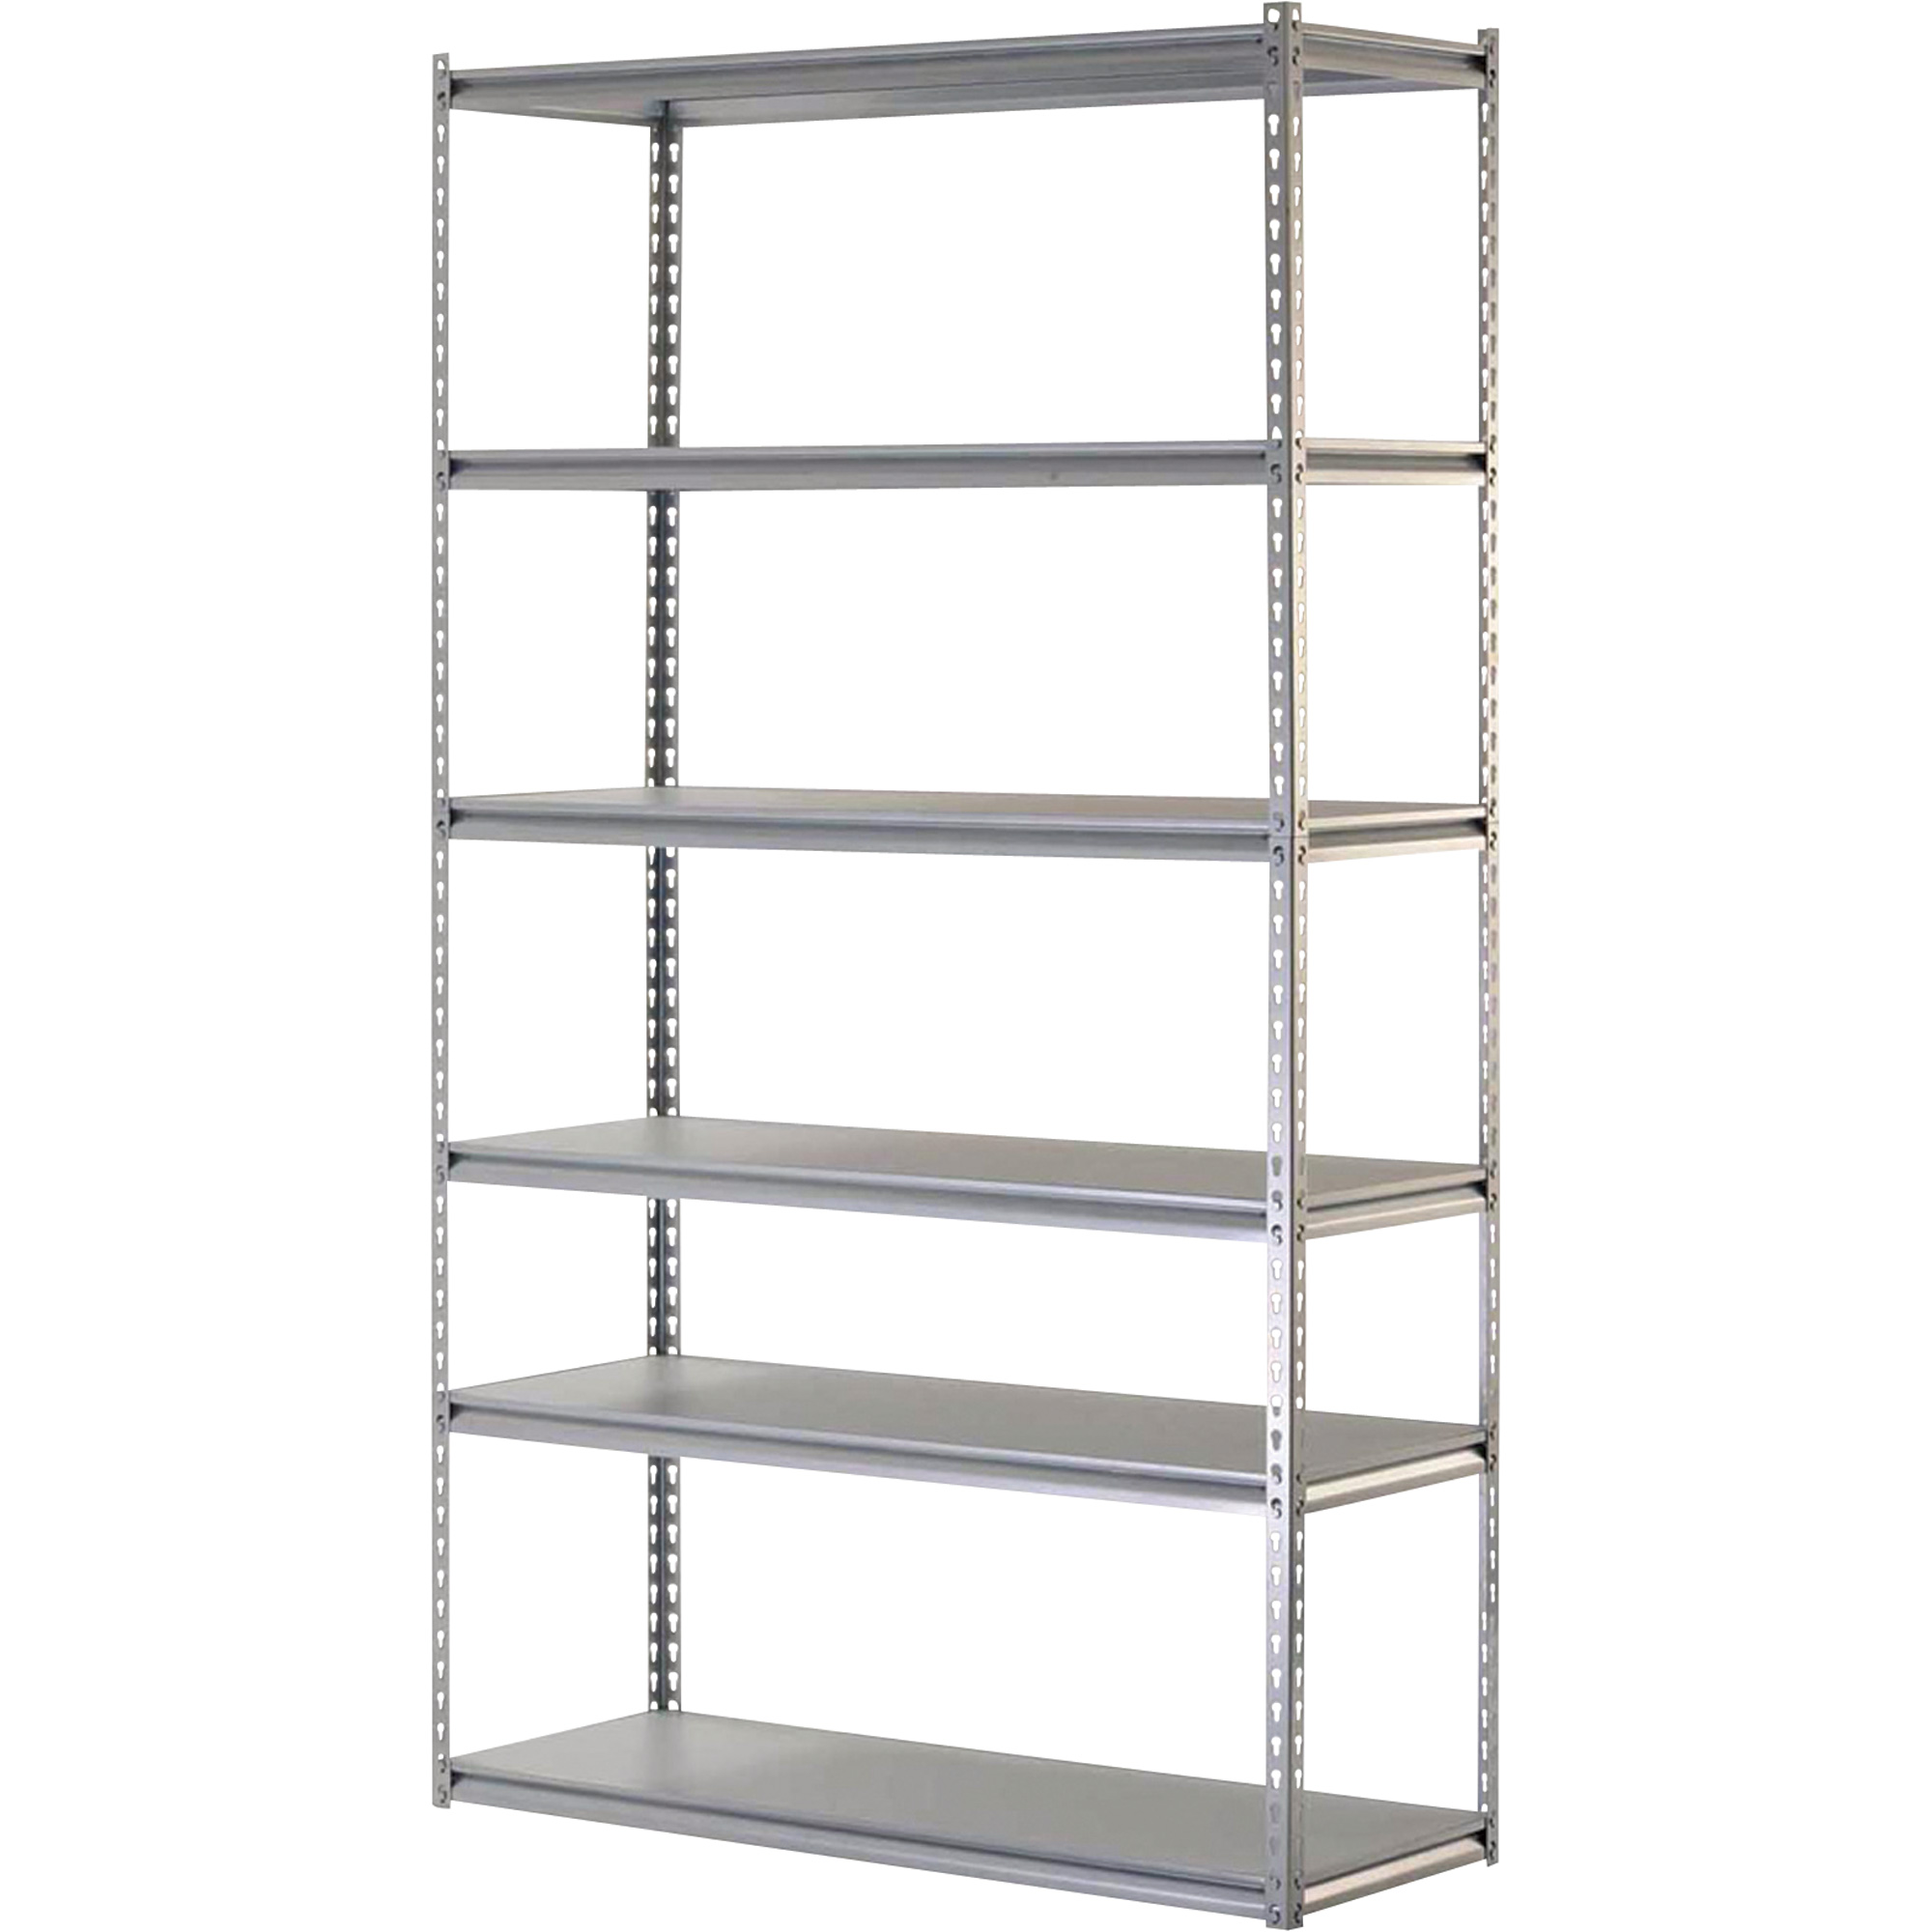 Awesome Gray Steel Edsal Shelving In Six Tier Design For Garage Furniture Ideas